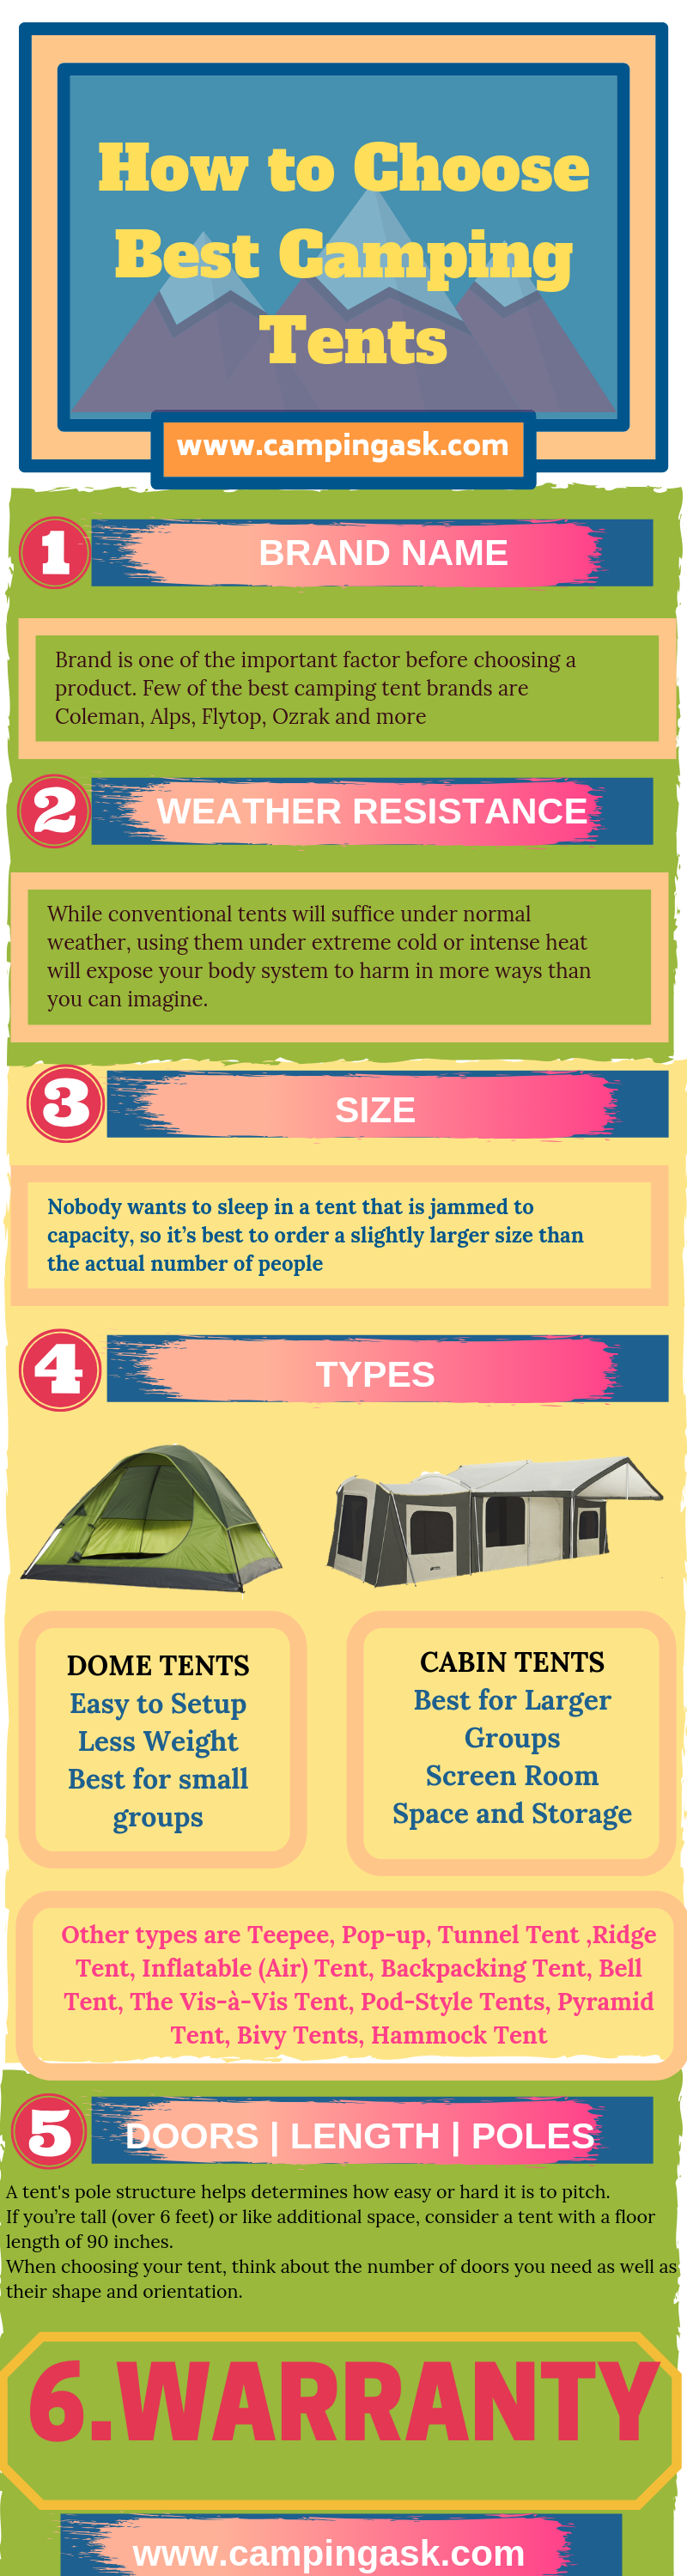 How to Choose Best Camping Tent 2019 | Best tents for